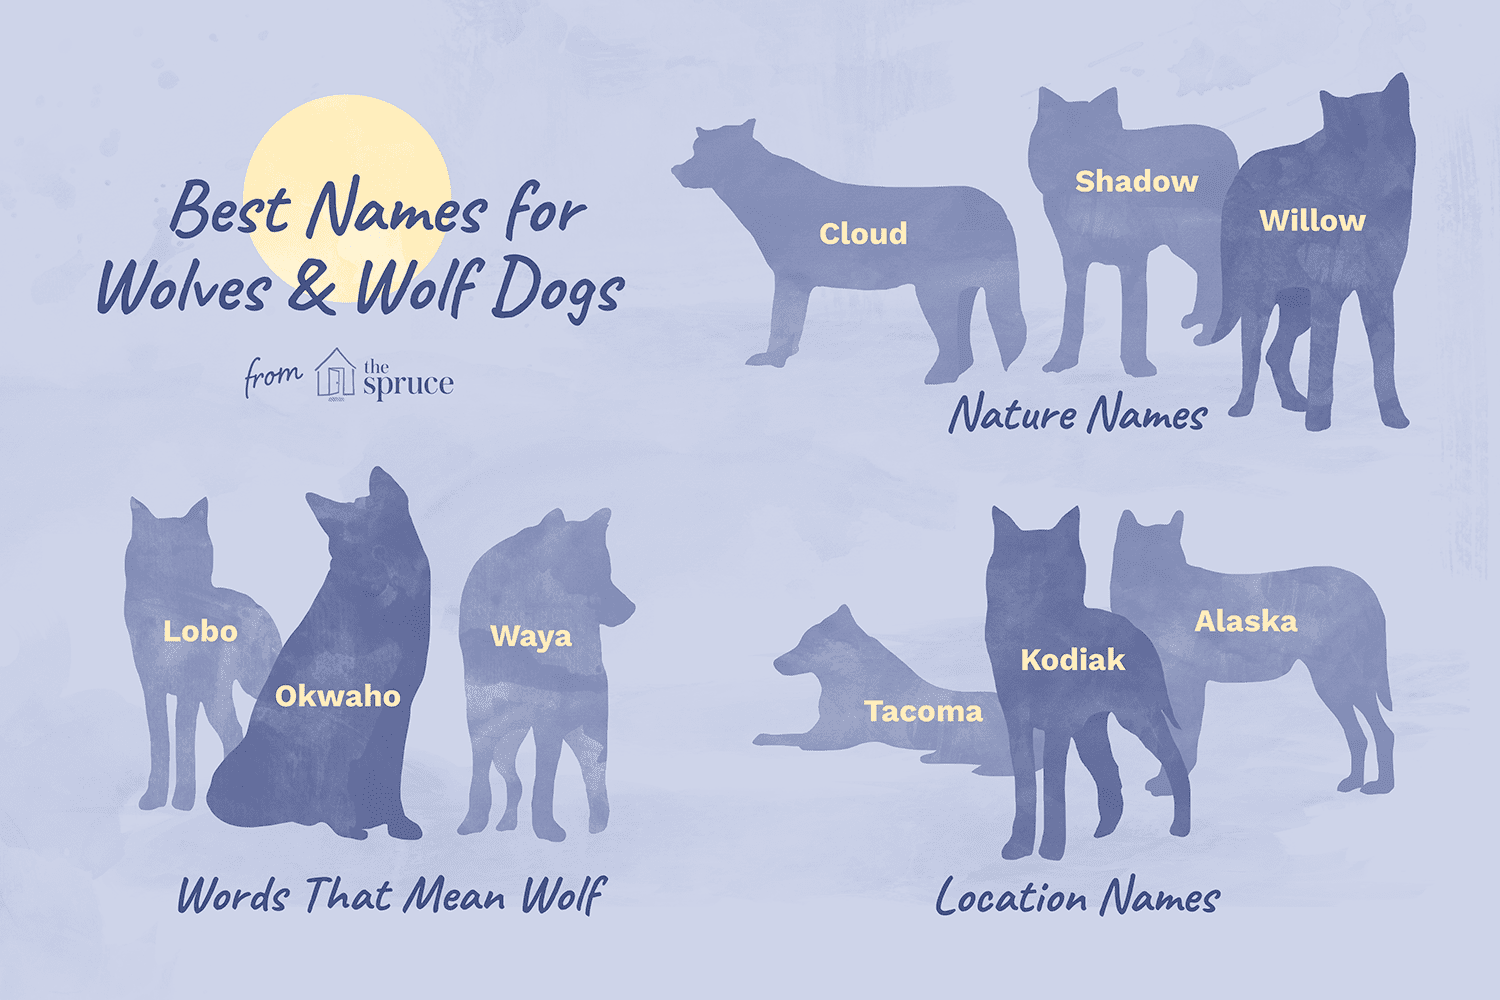 Pet Wolf and Wolfdog Names